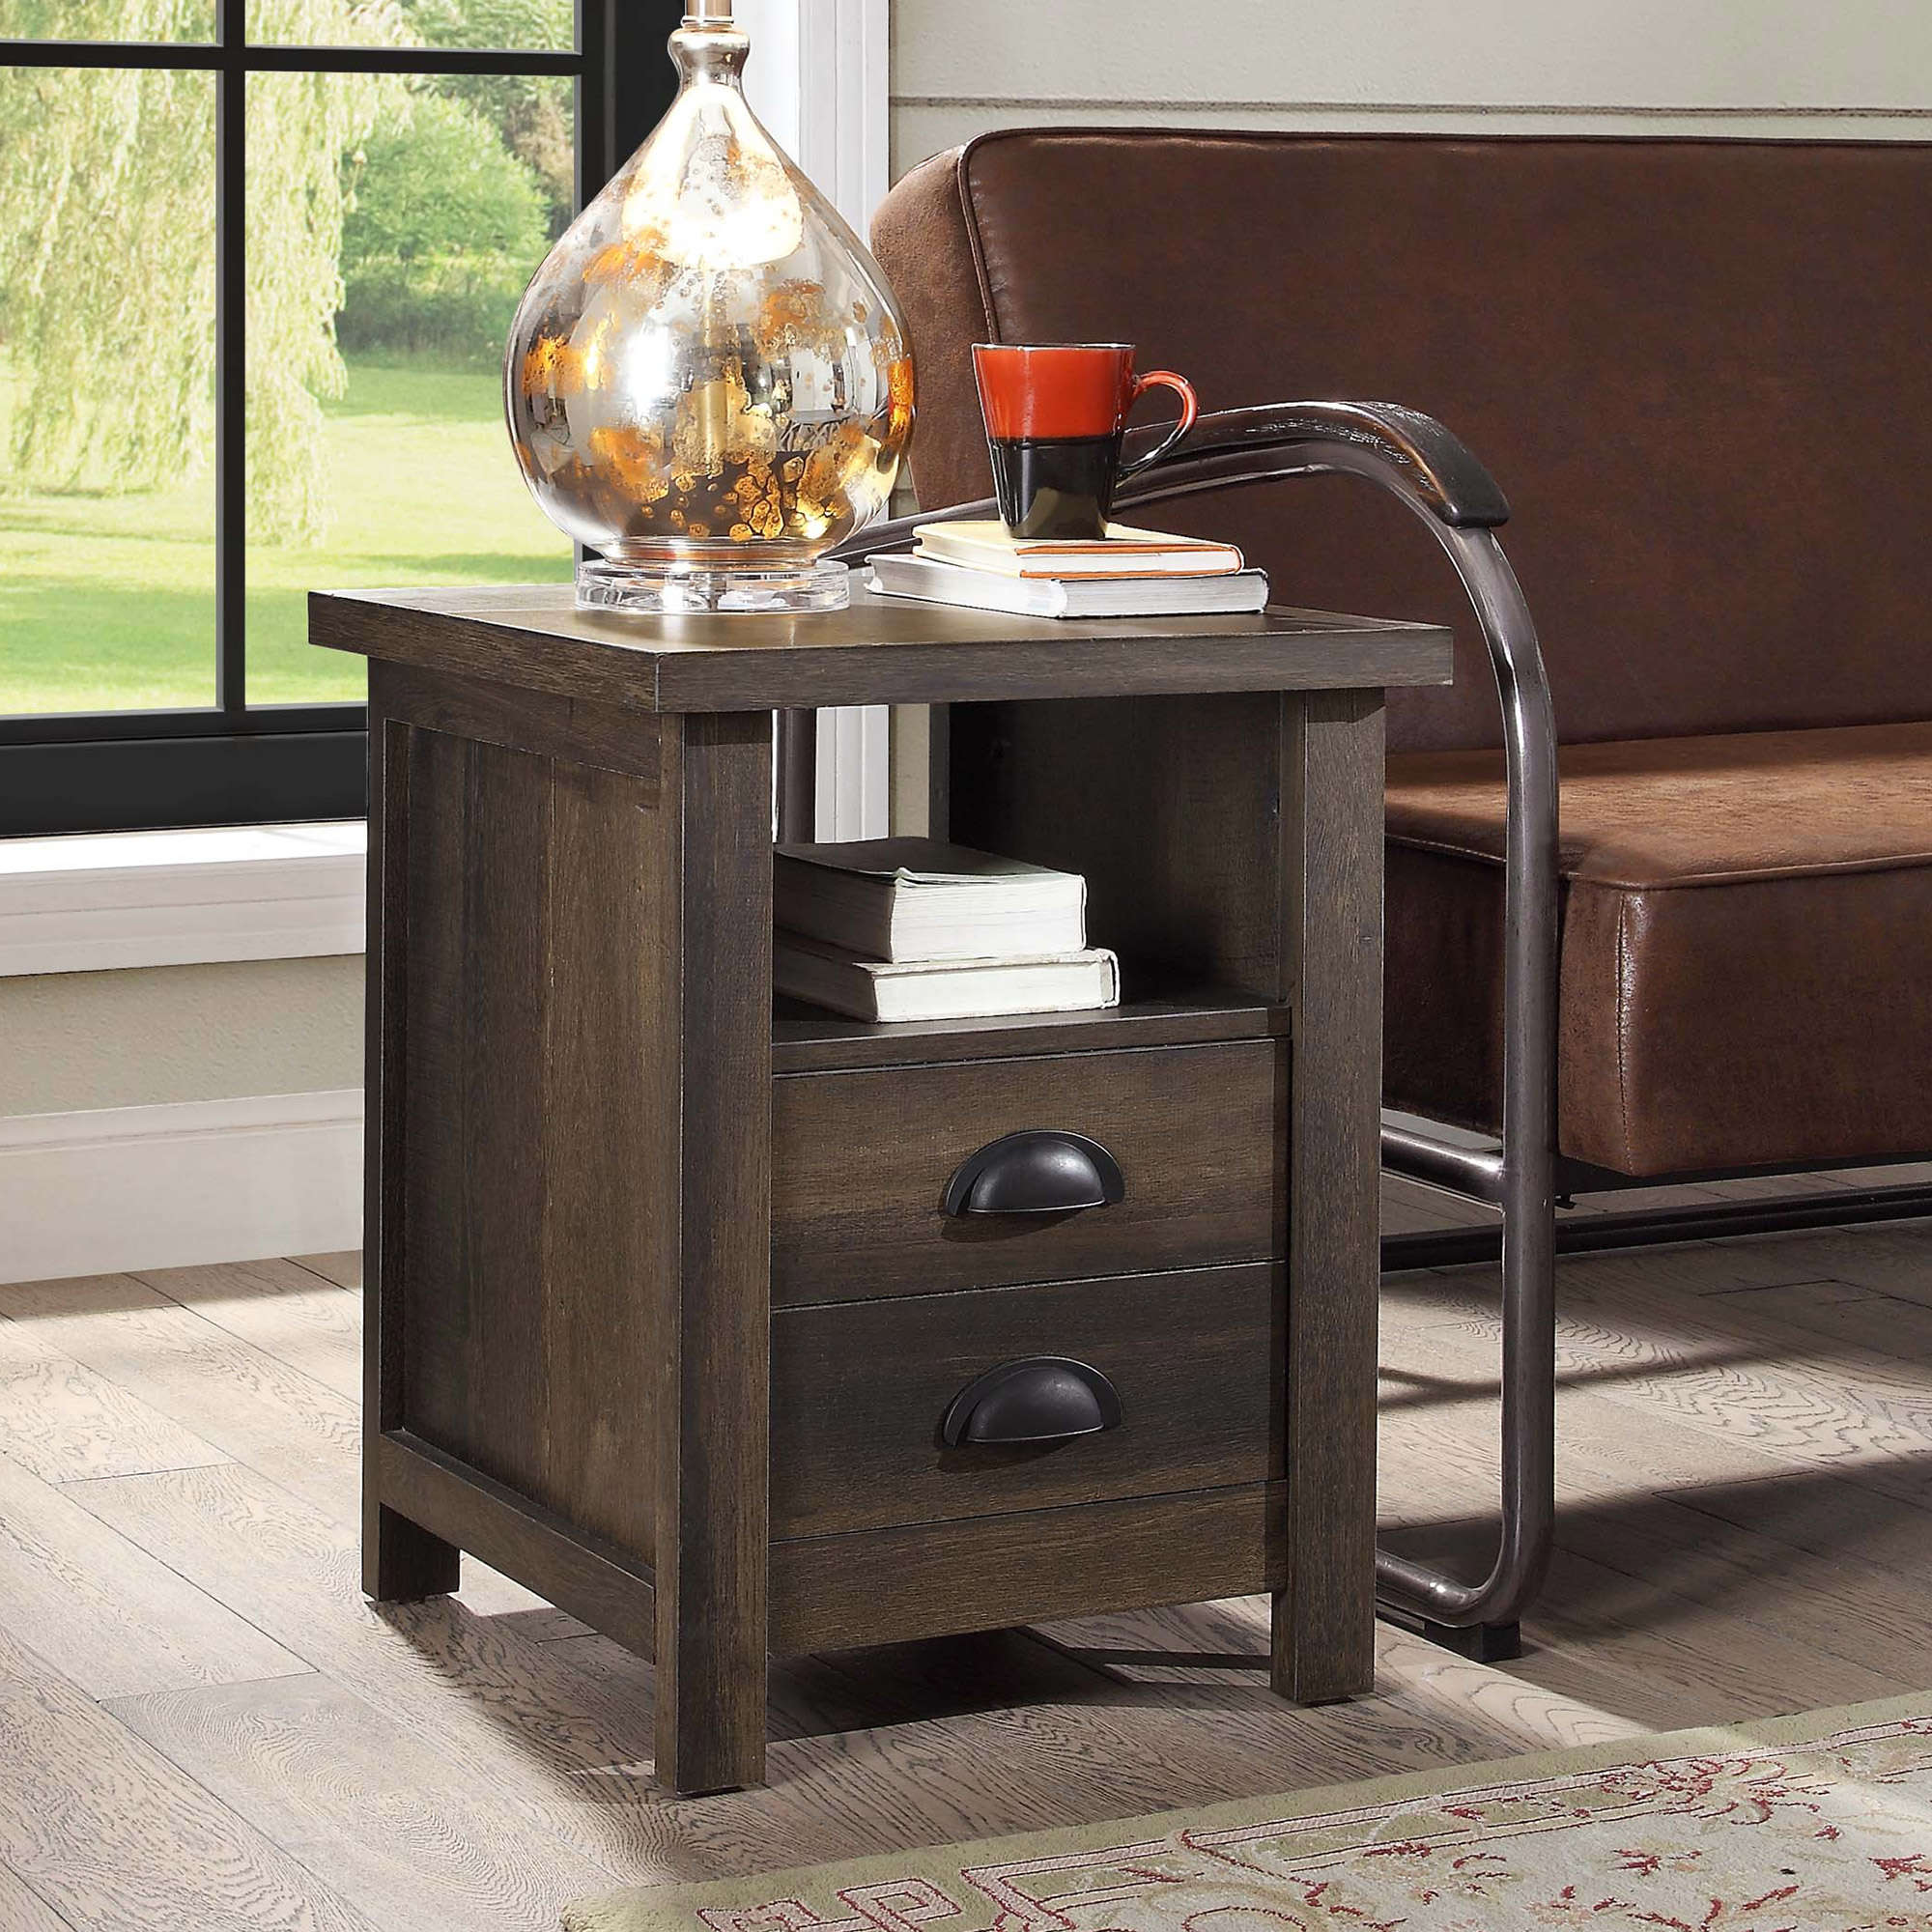 Better Homes and Gardens Granary Modern Farmhouse End Table, Multiple Finishes by WHALEN LIMITED